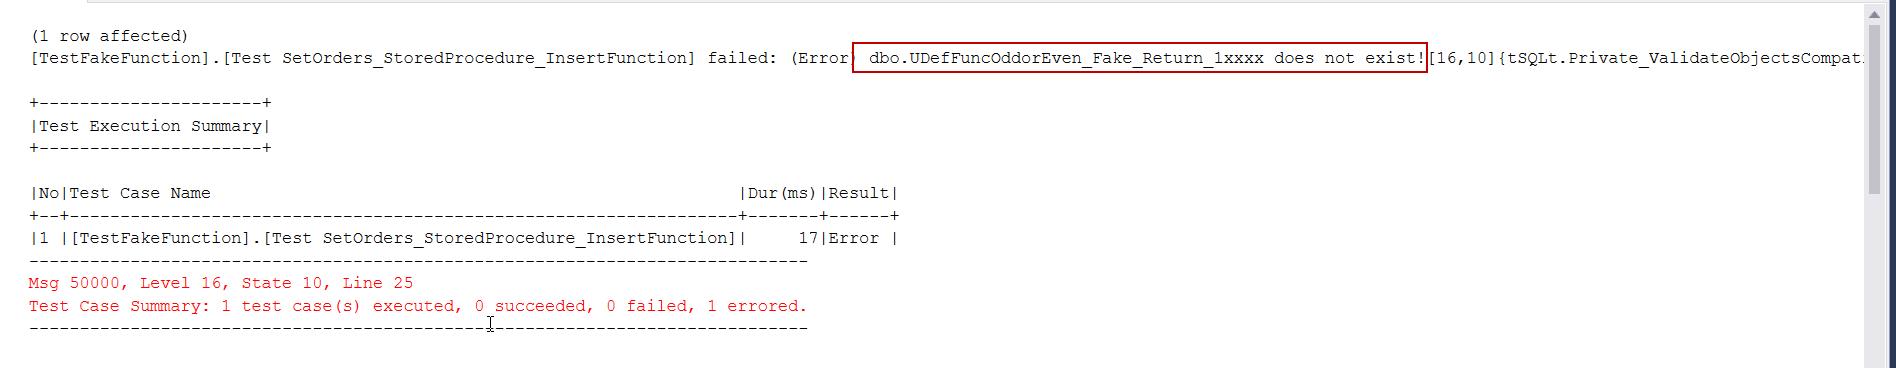 SQL Unit testing FakeFunction does not exists error image